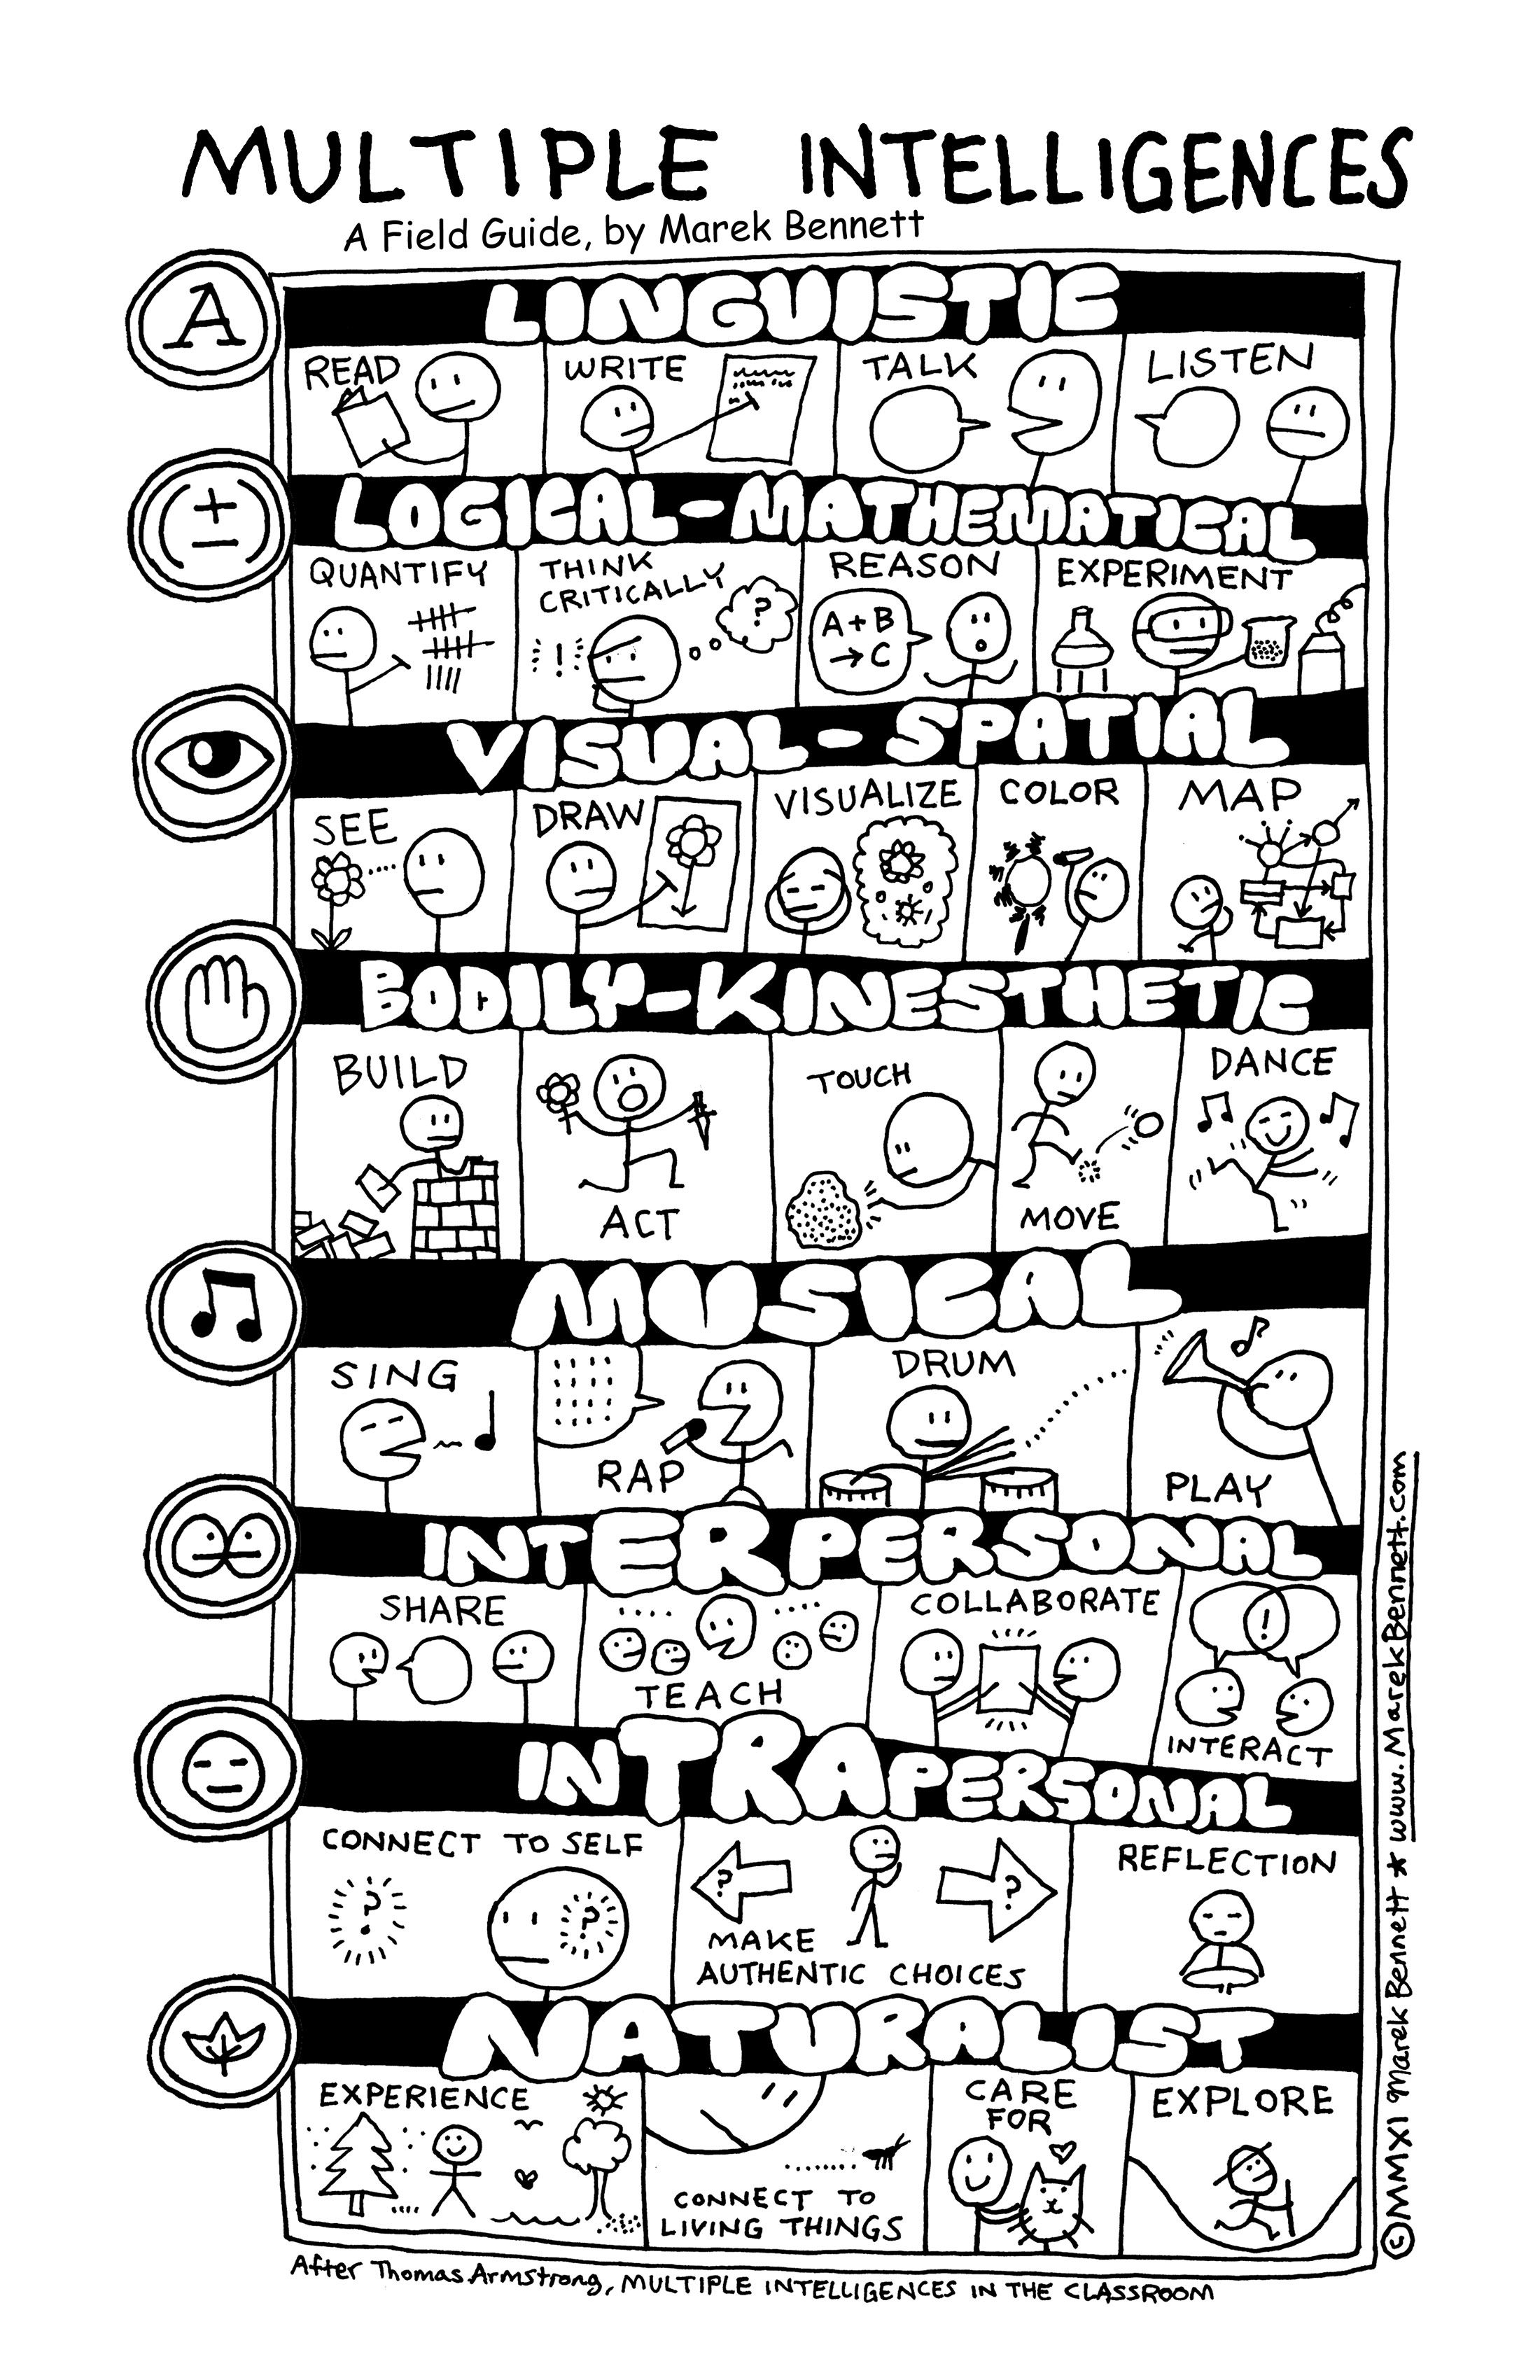 A helpful representation of the multiple intelligences